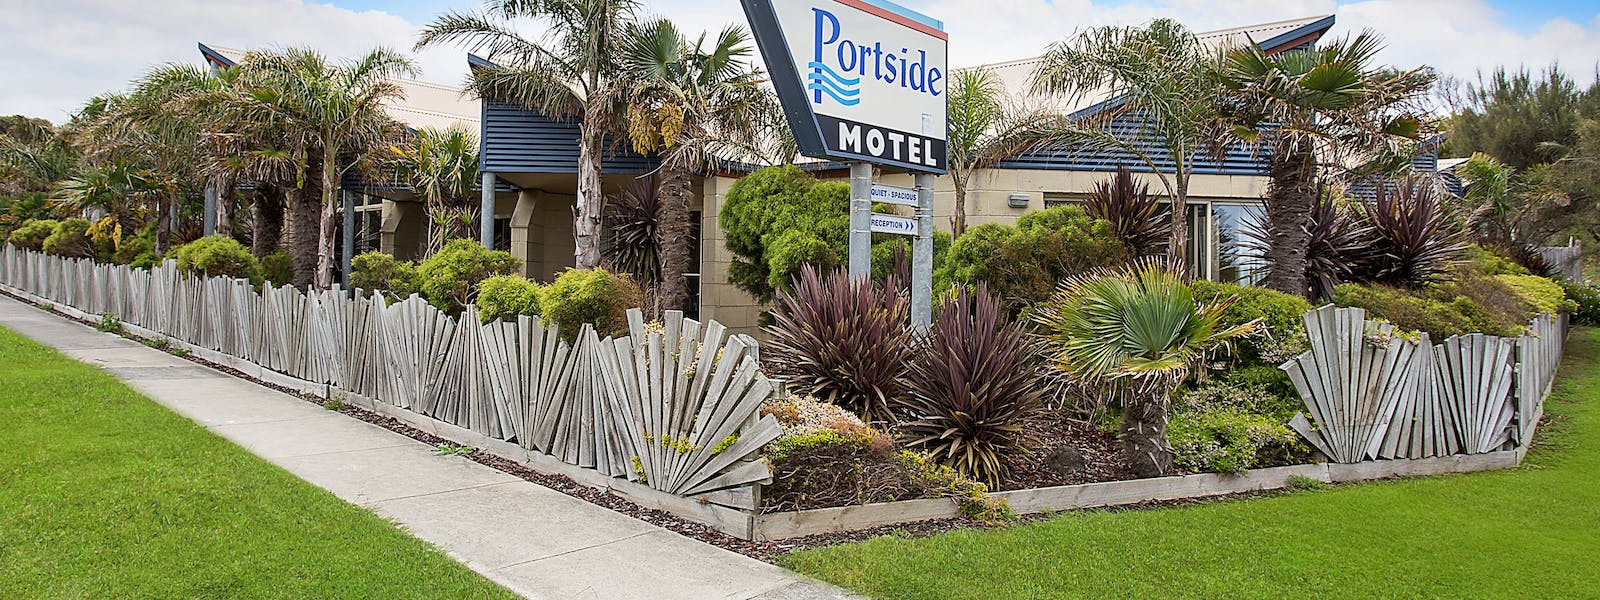 Portside Motel unique style design and garden